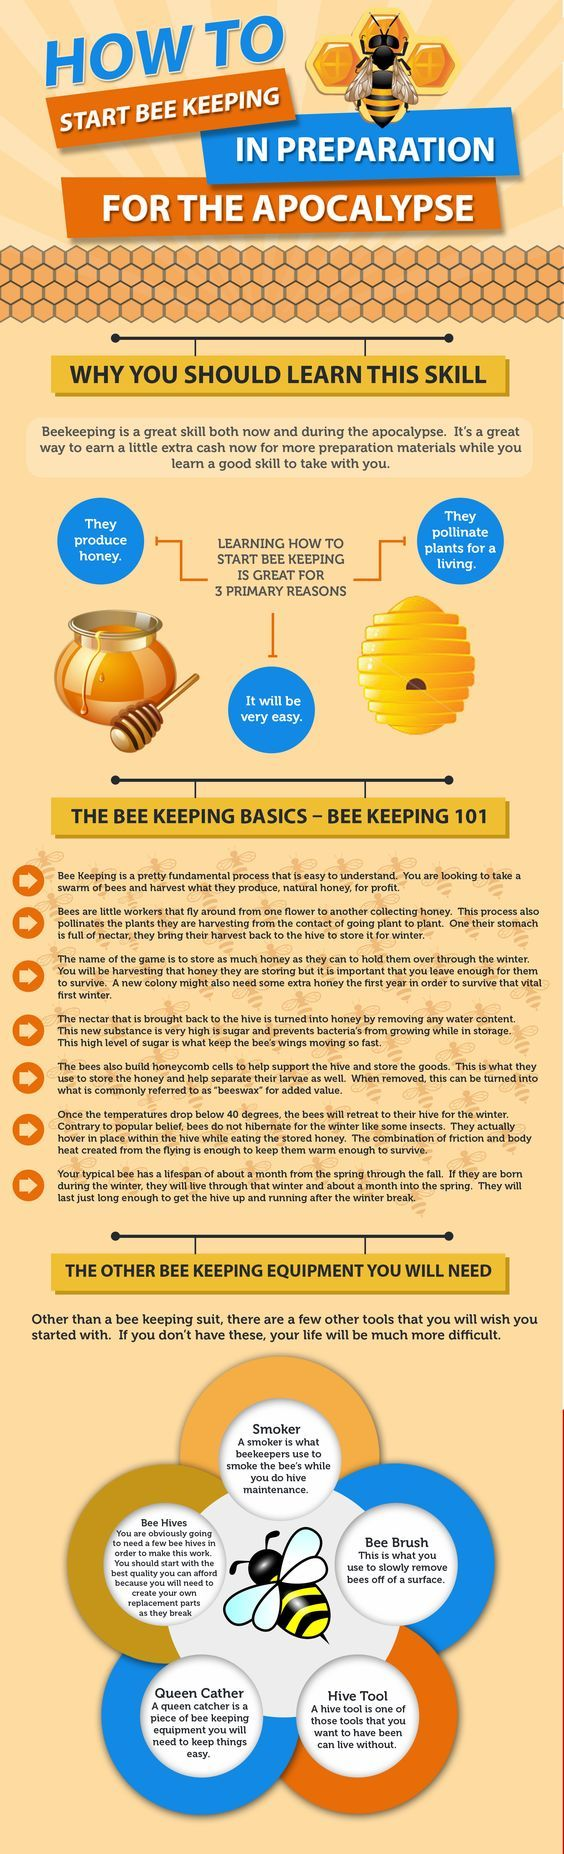 learning how to start beekeeping now can seriously improve your